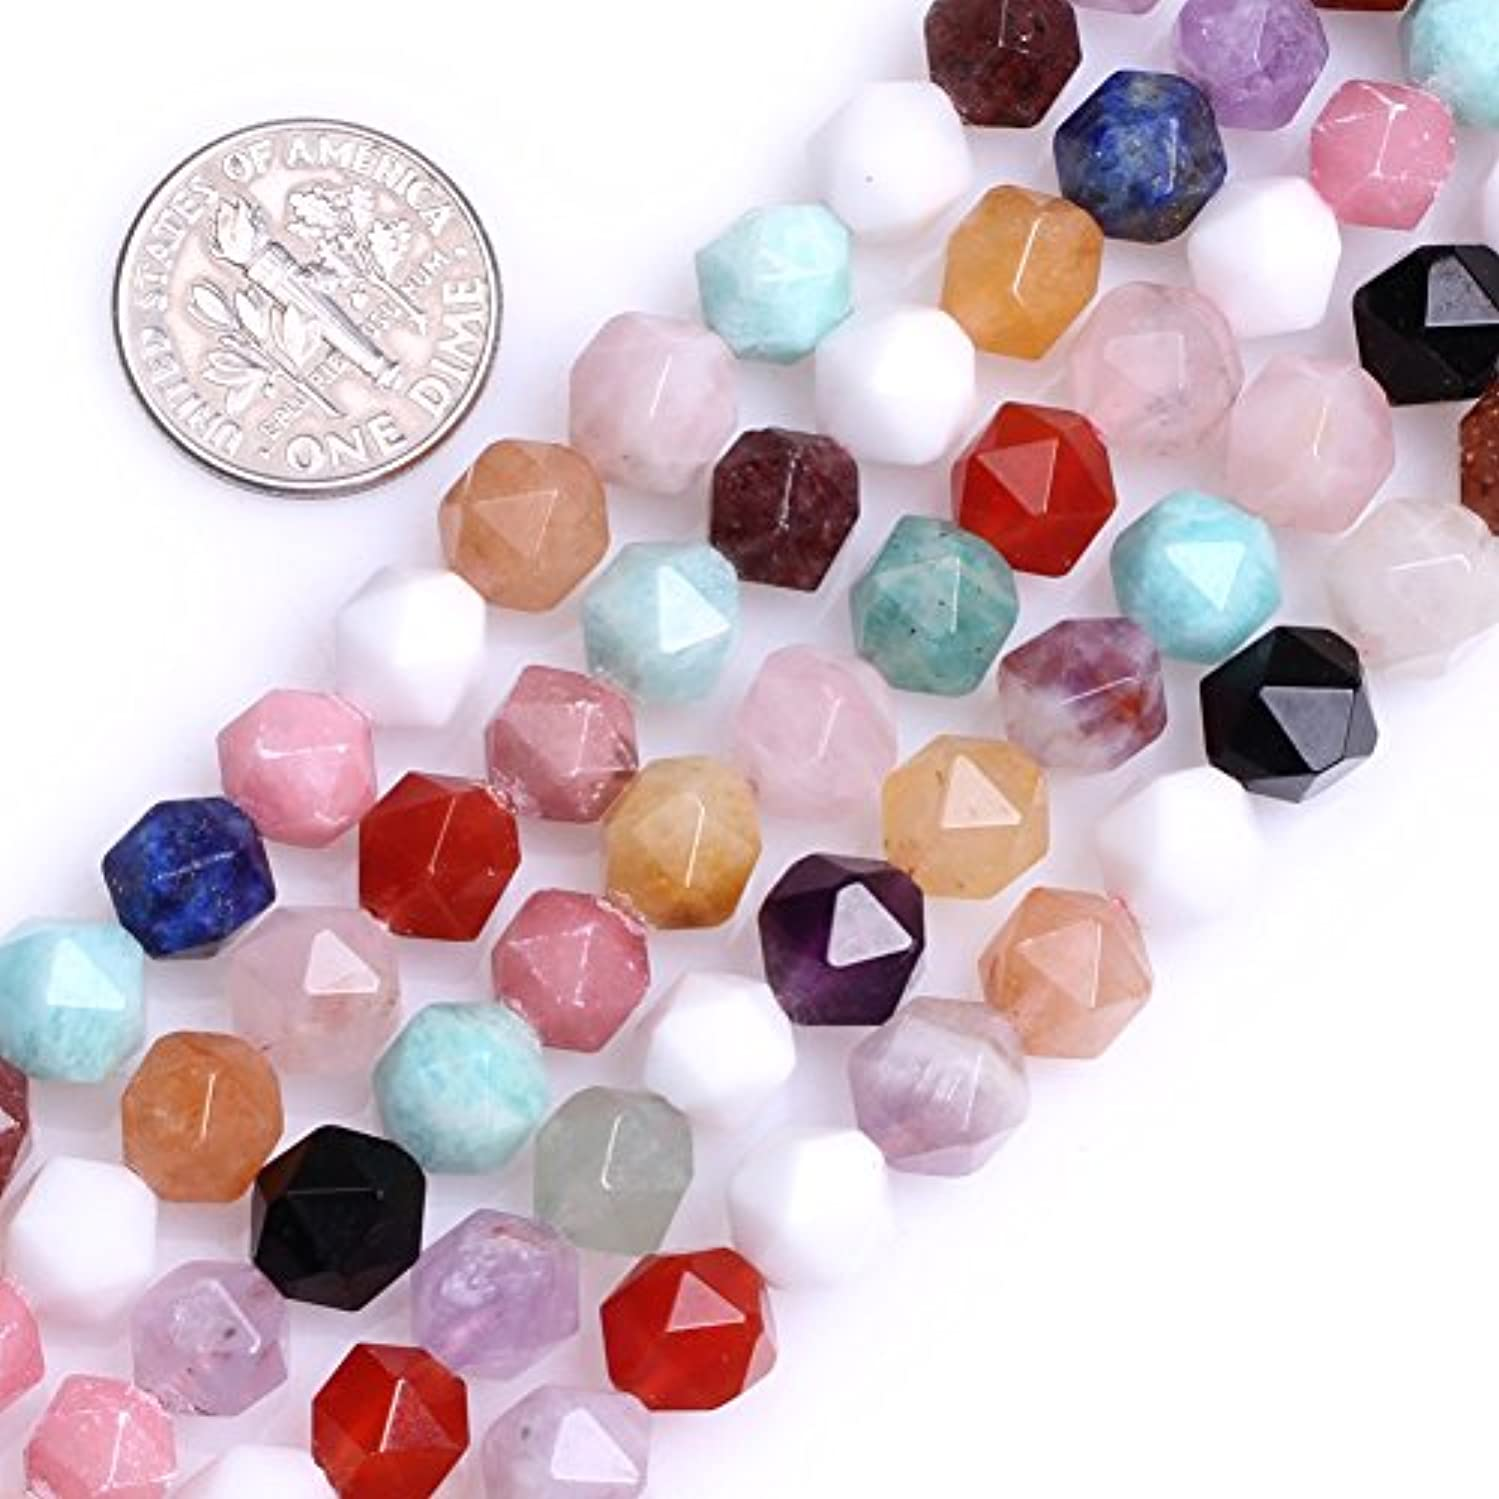 GEM-Inside Multicolor Gemstone Loose Beads Natural 8mm Faceted Semi Precious Cambay Stone Power for Jewelry Making 15